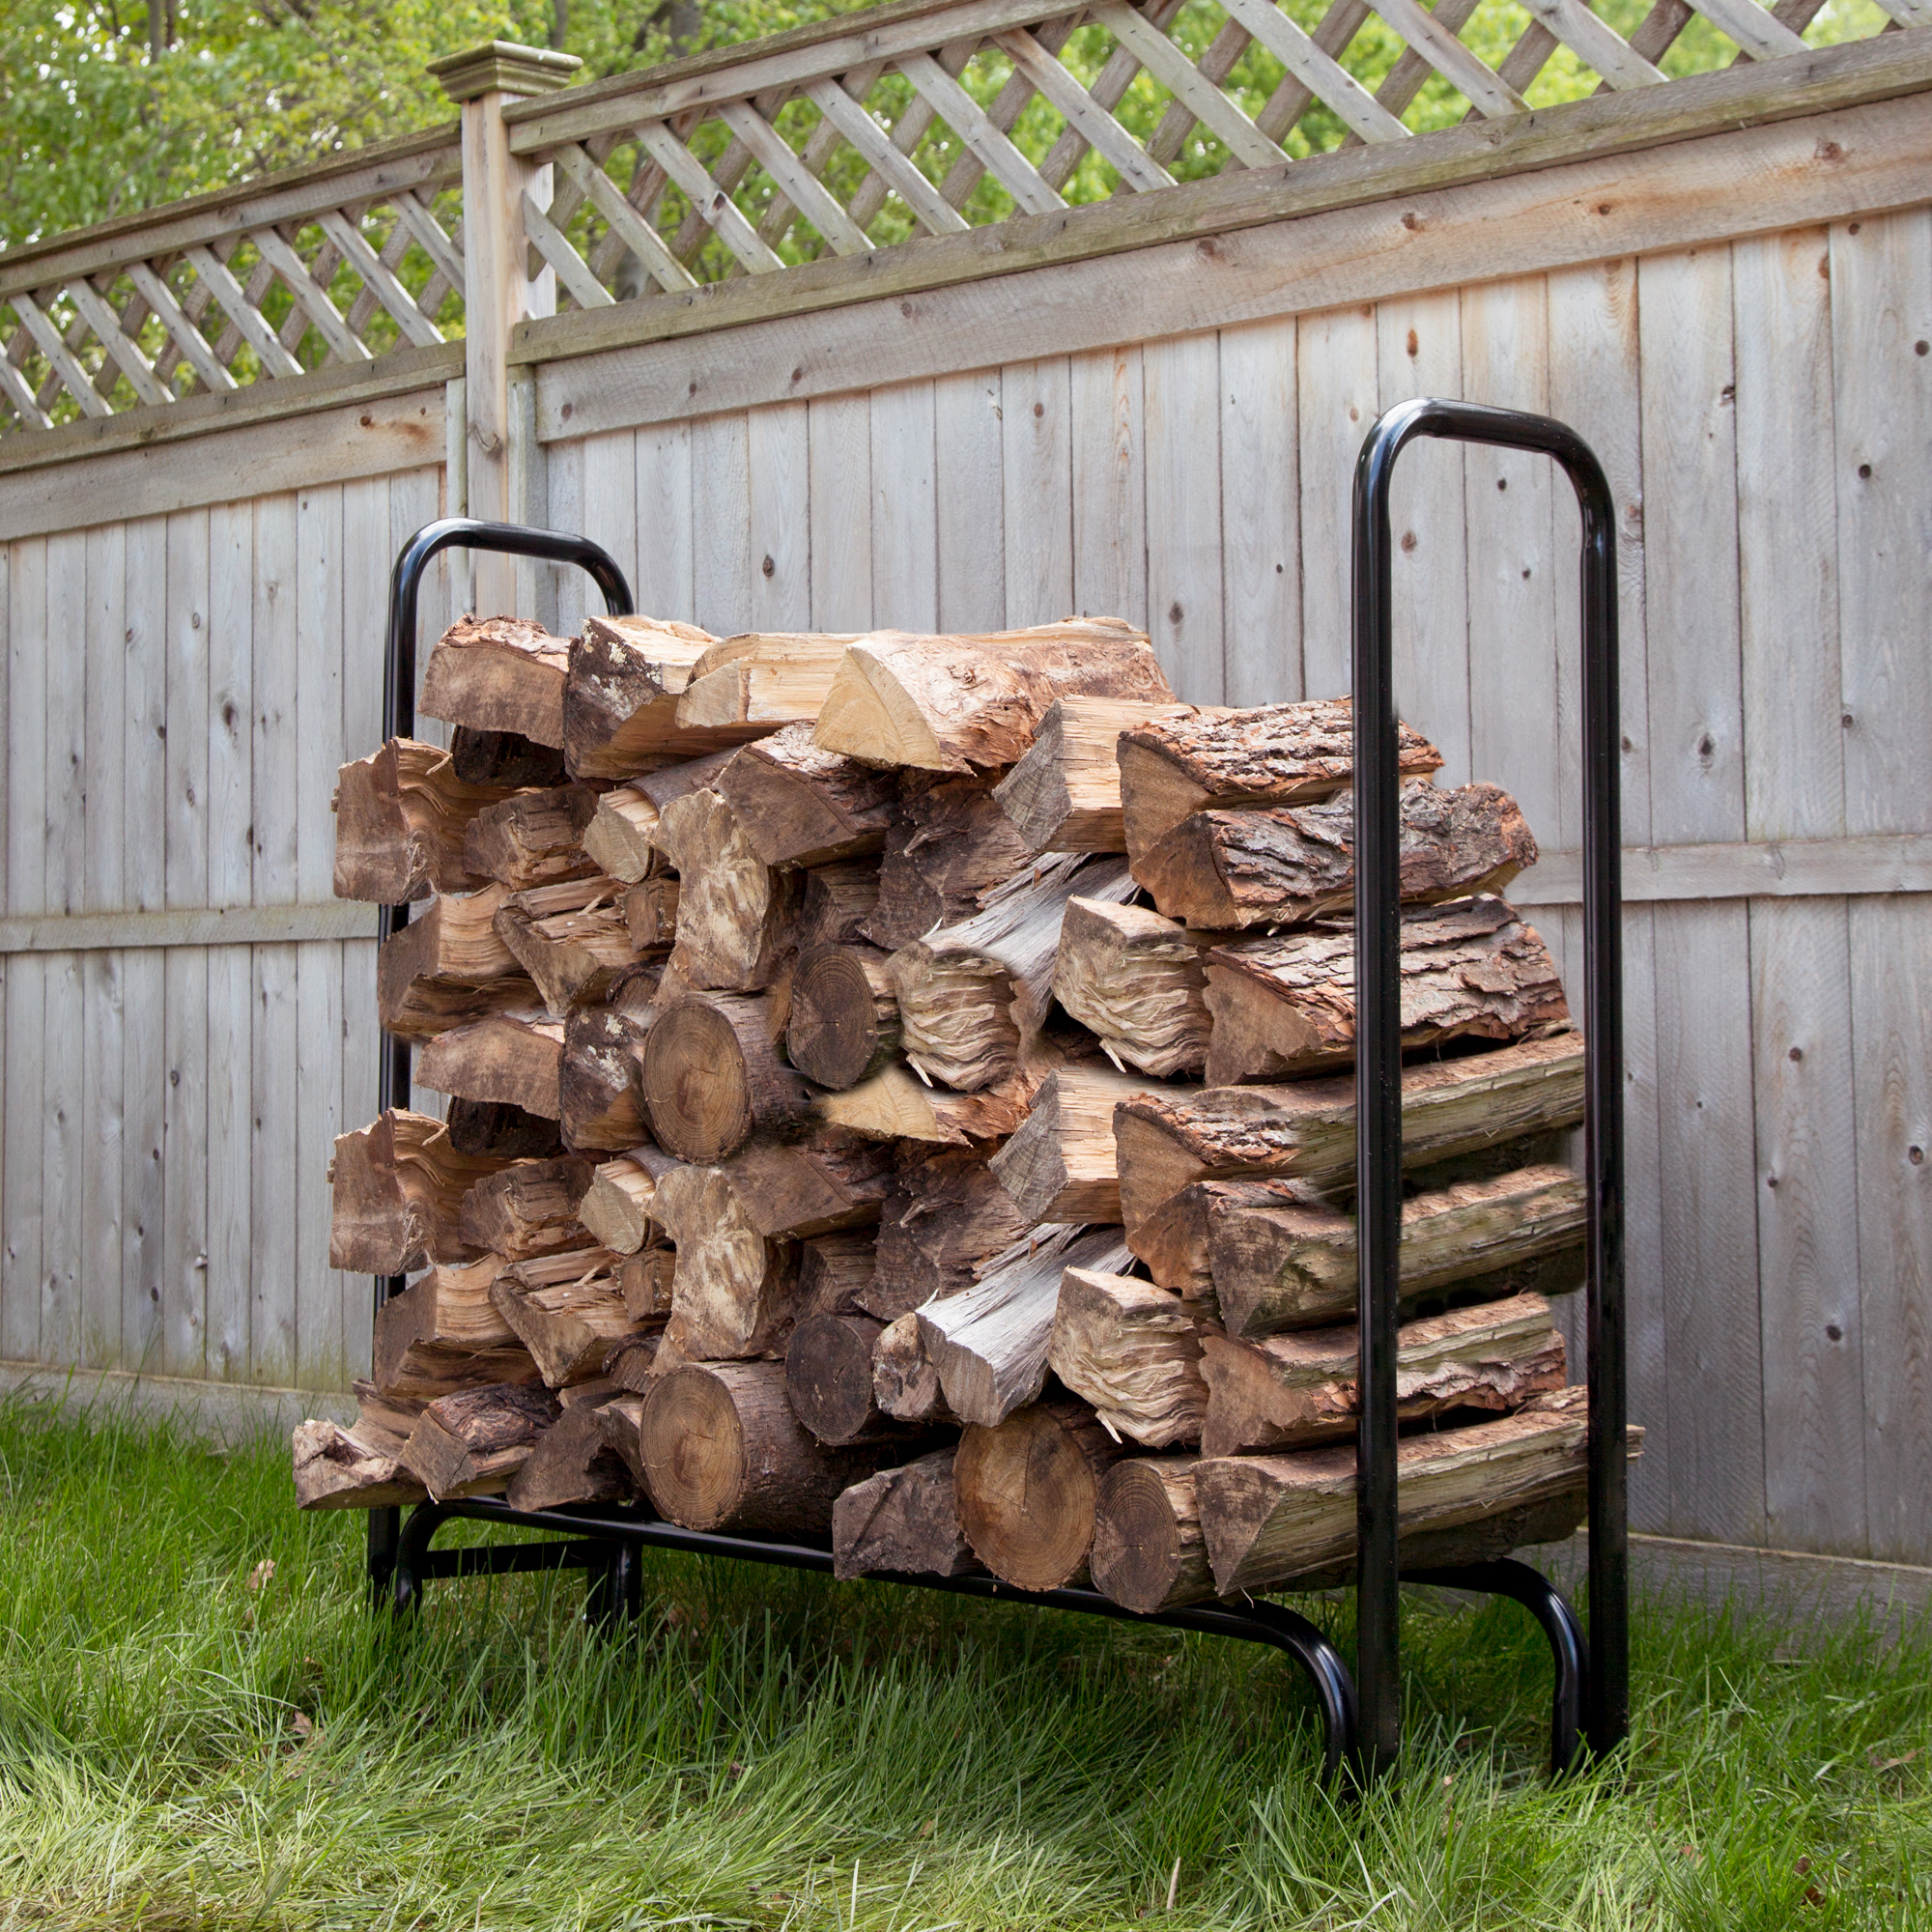 4 Foot Firewood Log Rack by Pure Garden by Trademark Global LLC